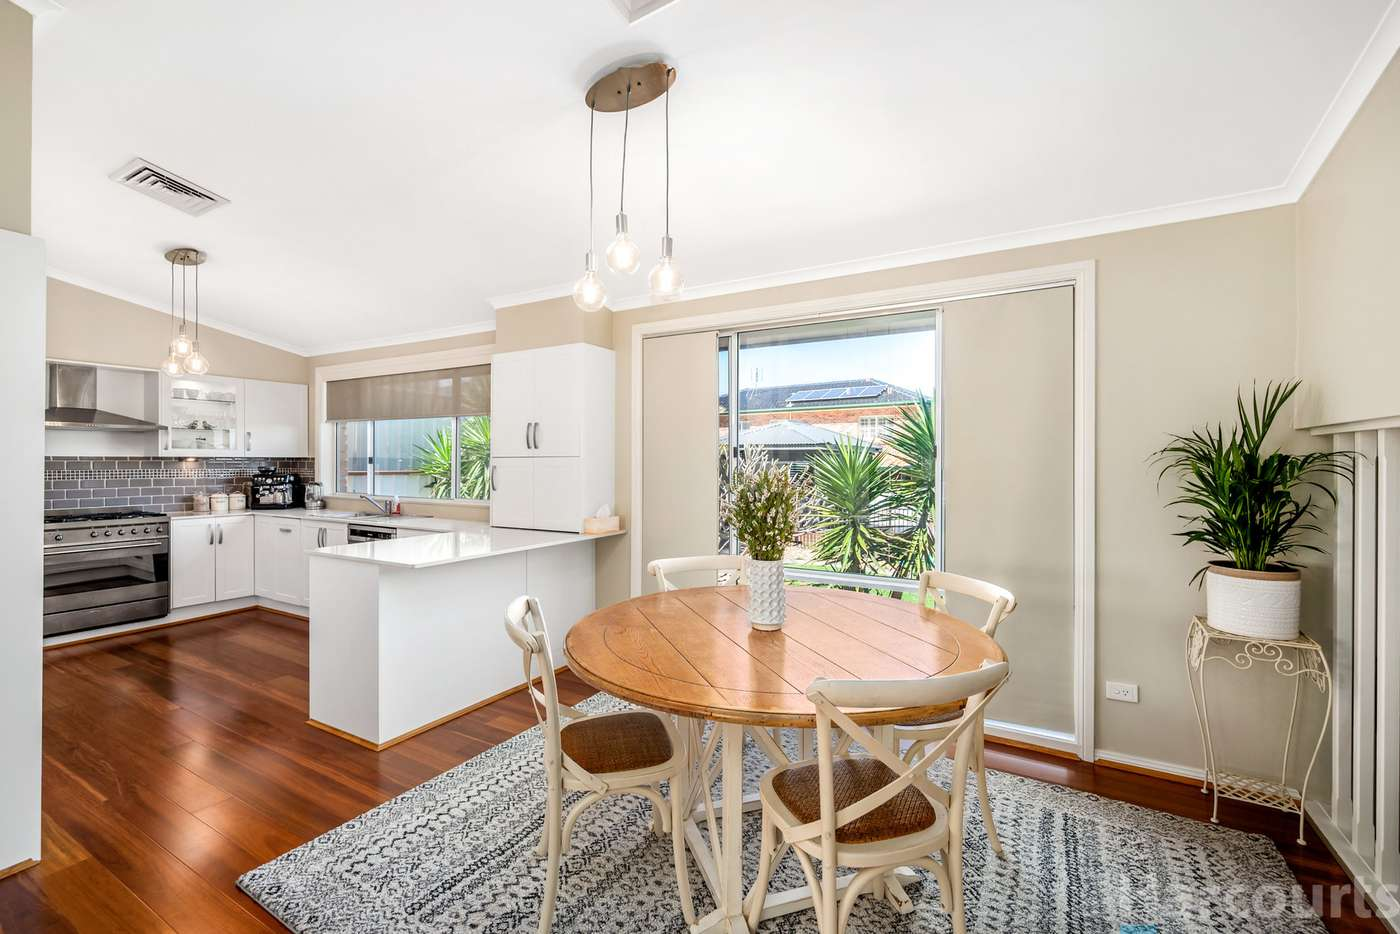 Fifth view of Homely house listing, 28 Nerang Place, Belmont NSW 2280